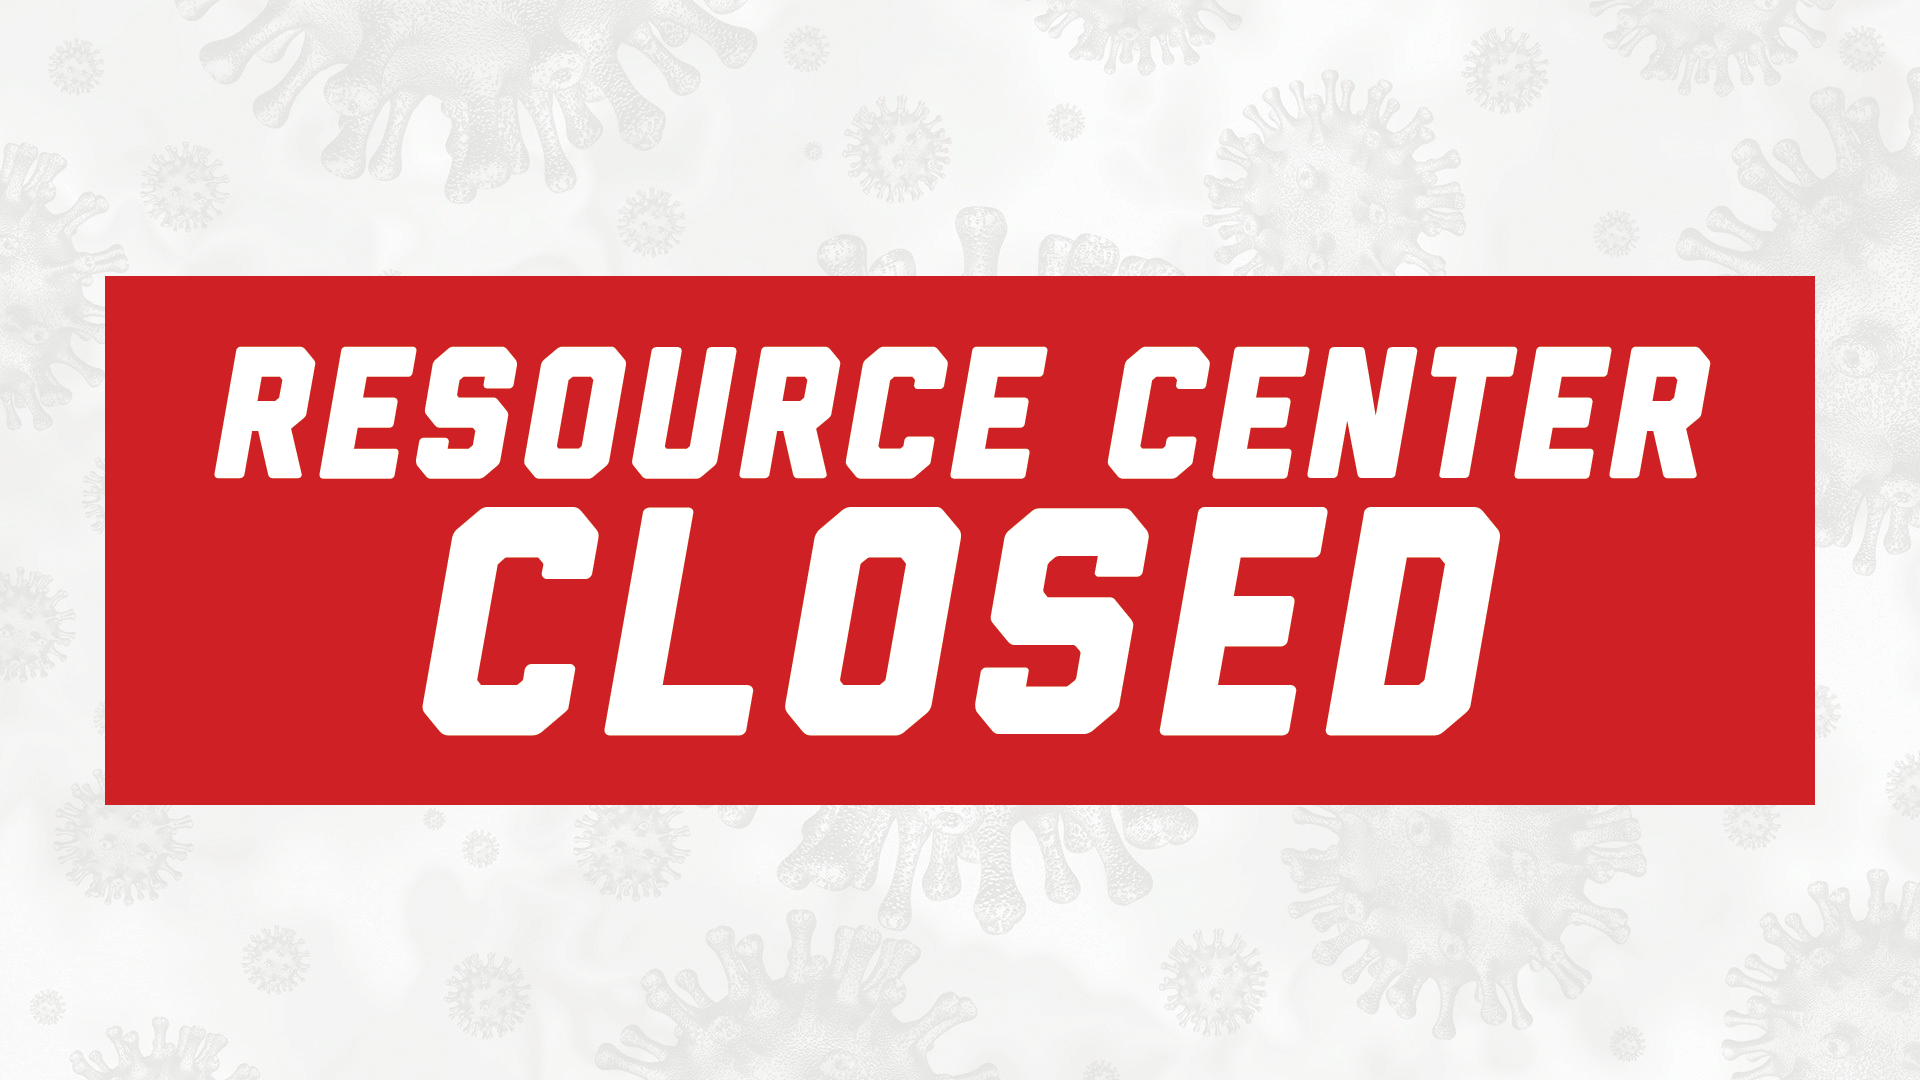 Resource Center Closed